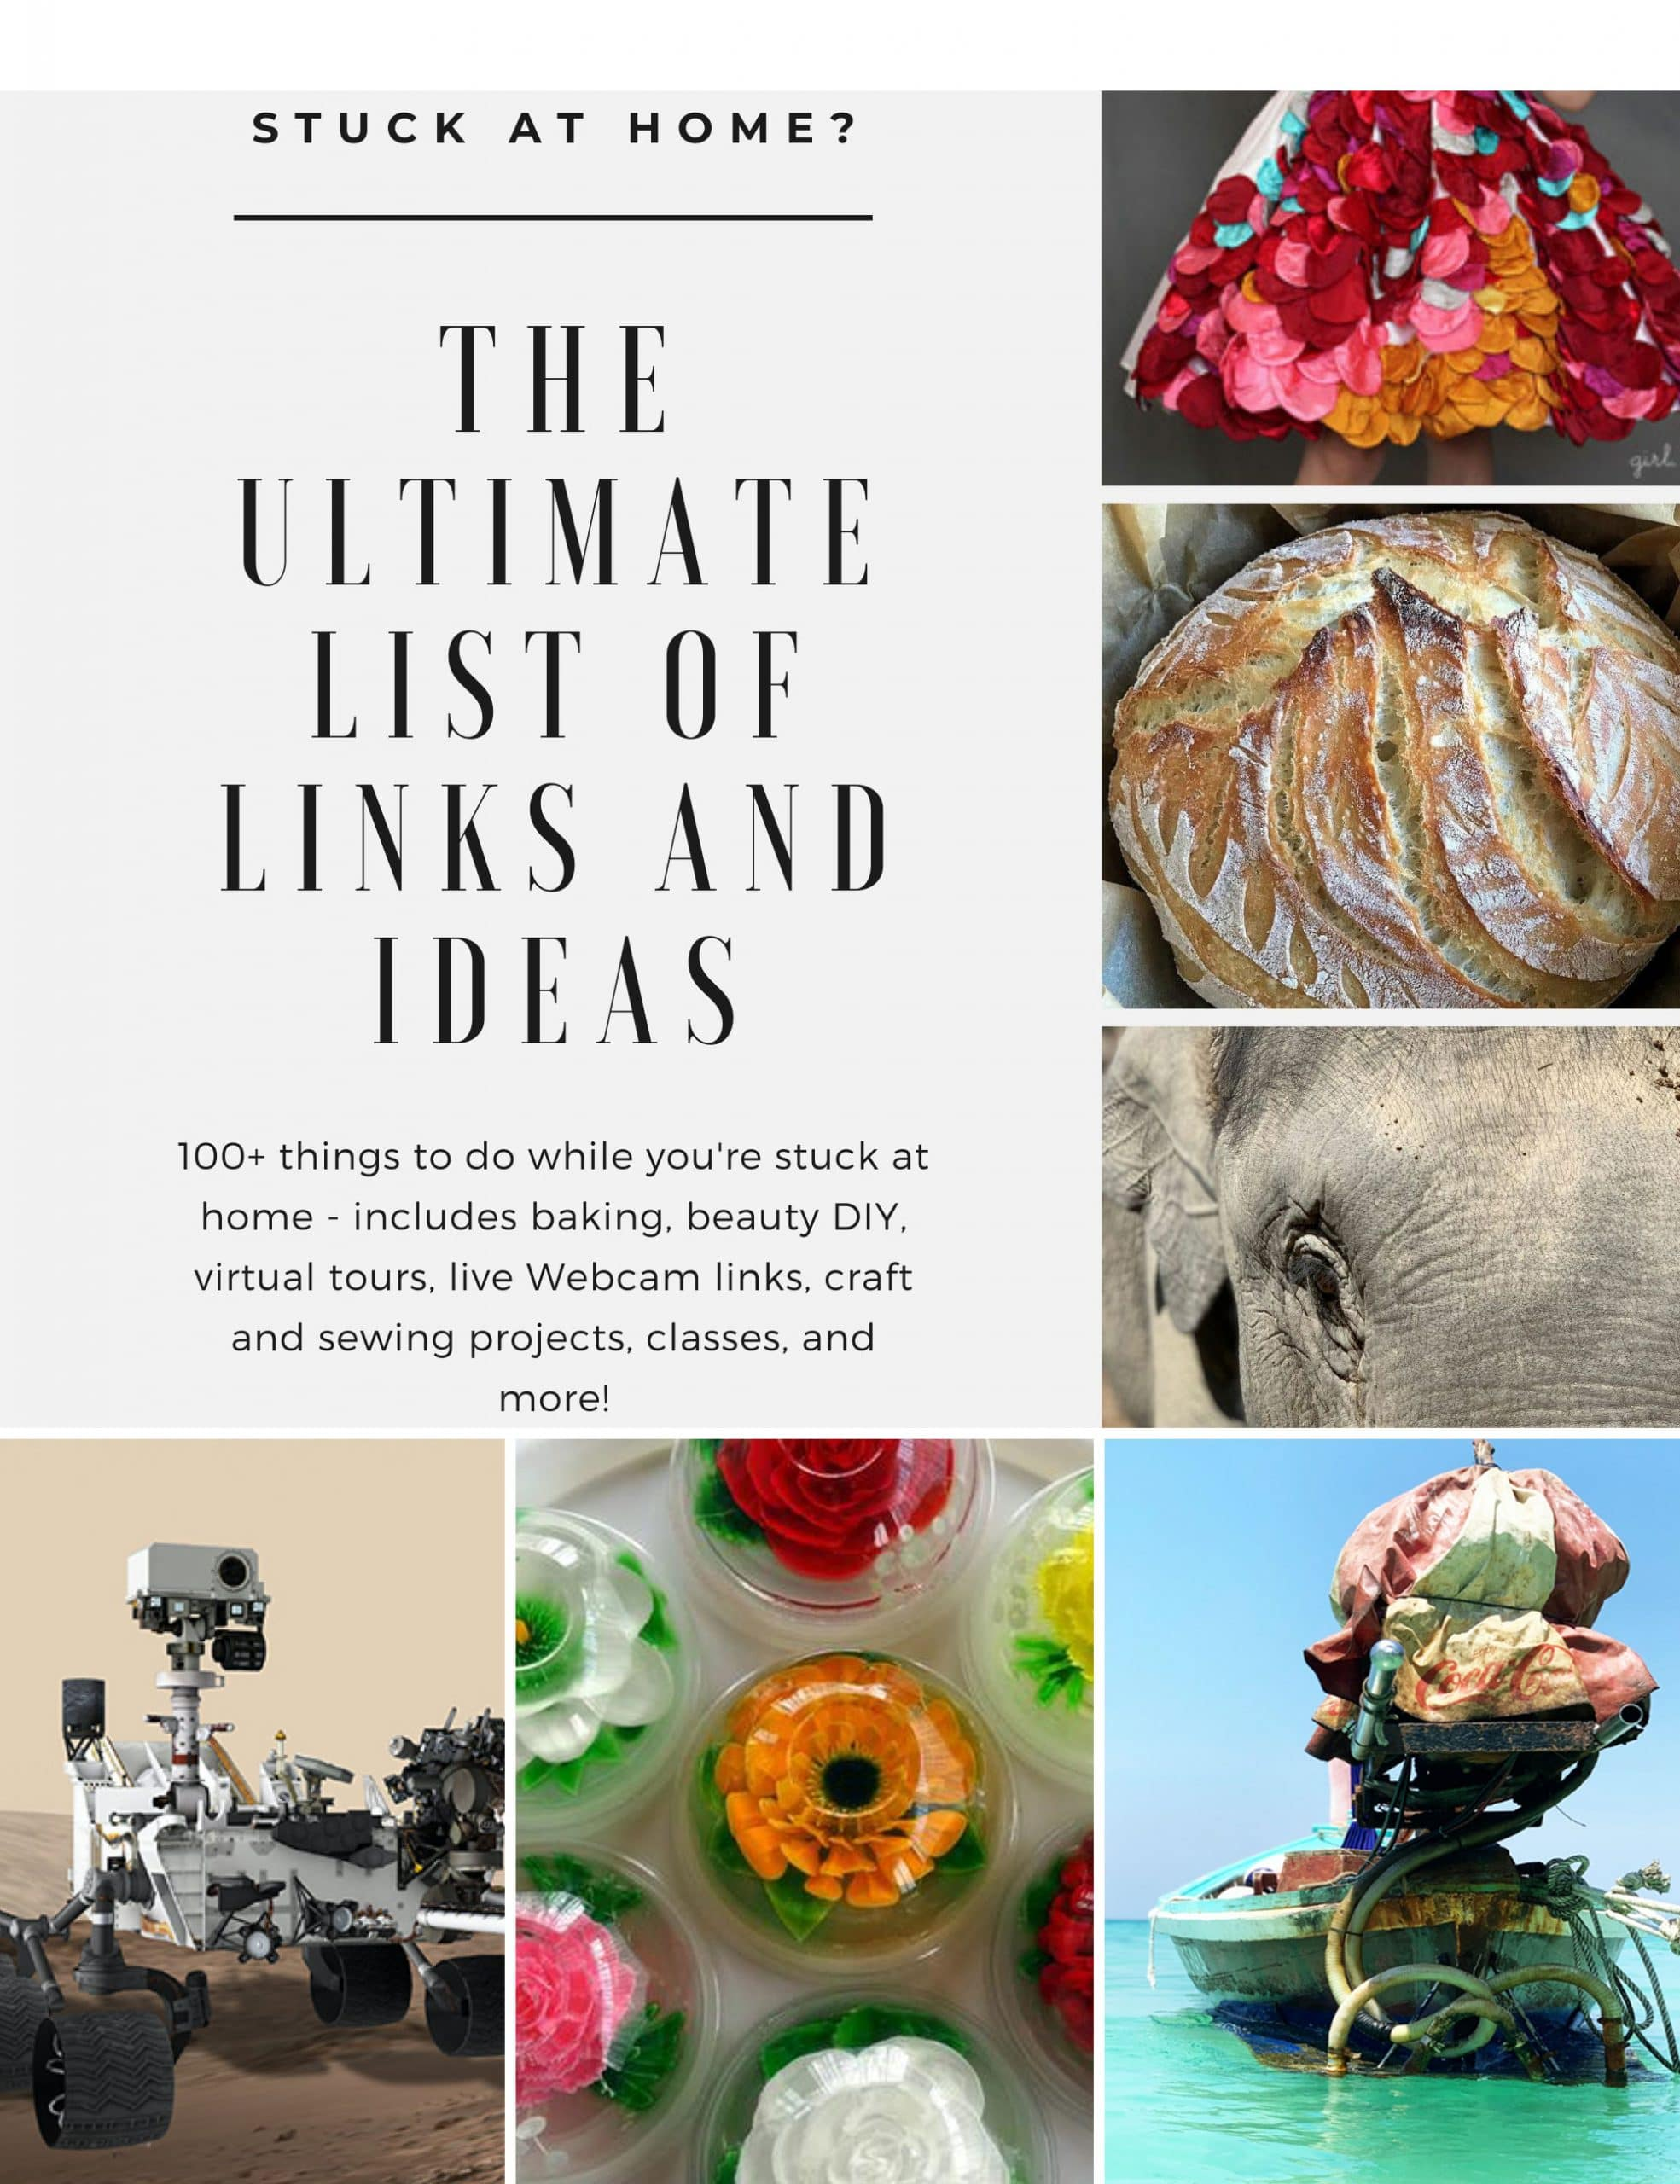 photo collage with bright multi-colored dress, bread loaf, elephant face, boat on water, gelatin flowers, and MARS robot with text